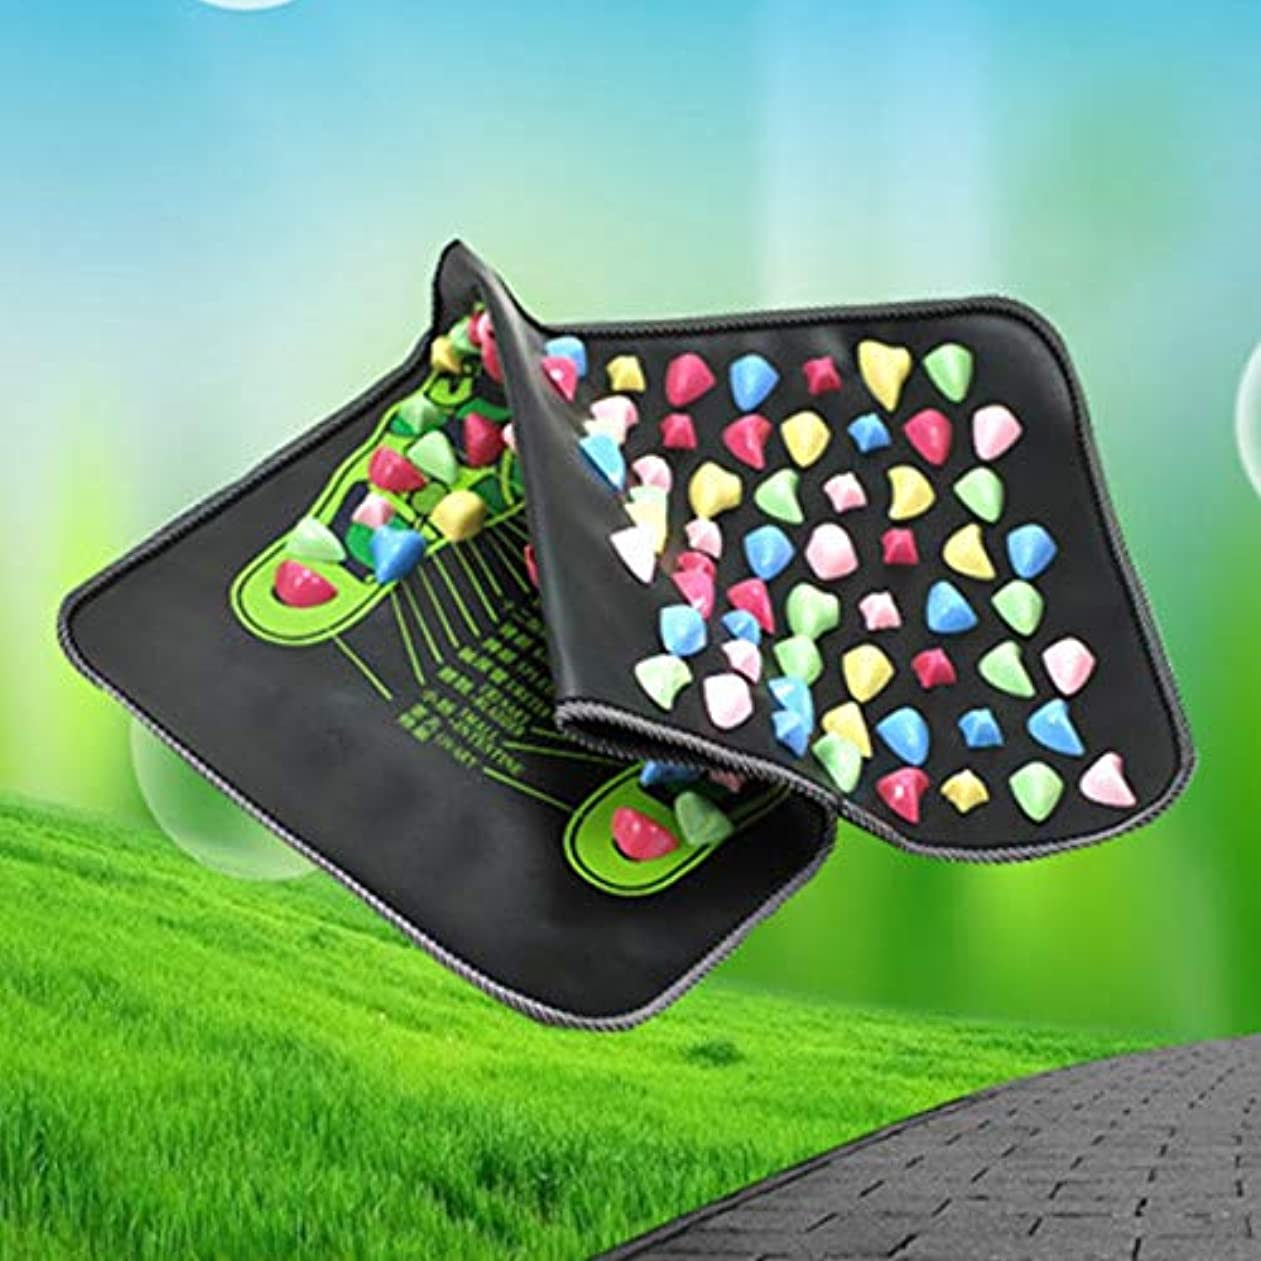 Reflexology Walk Stone Foot Leg Pain Relieve Relief Walk Massager Mat Health Care Acupressure Mat Pad massageador